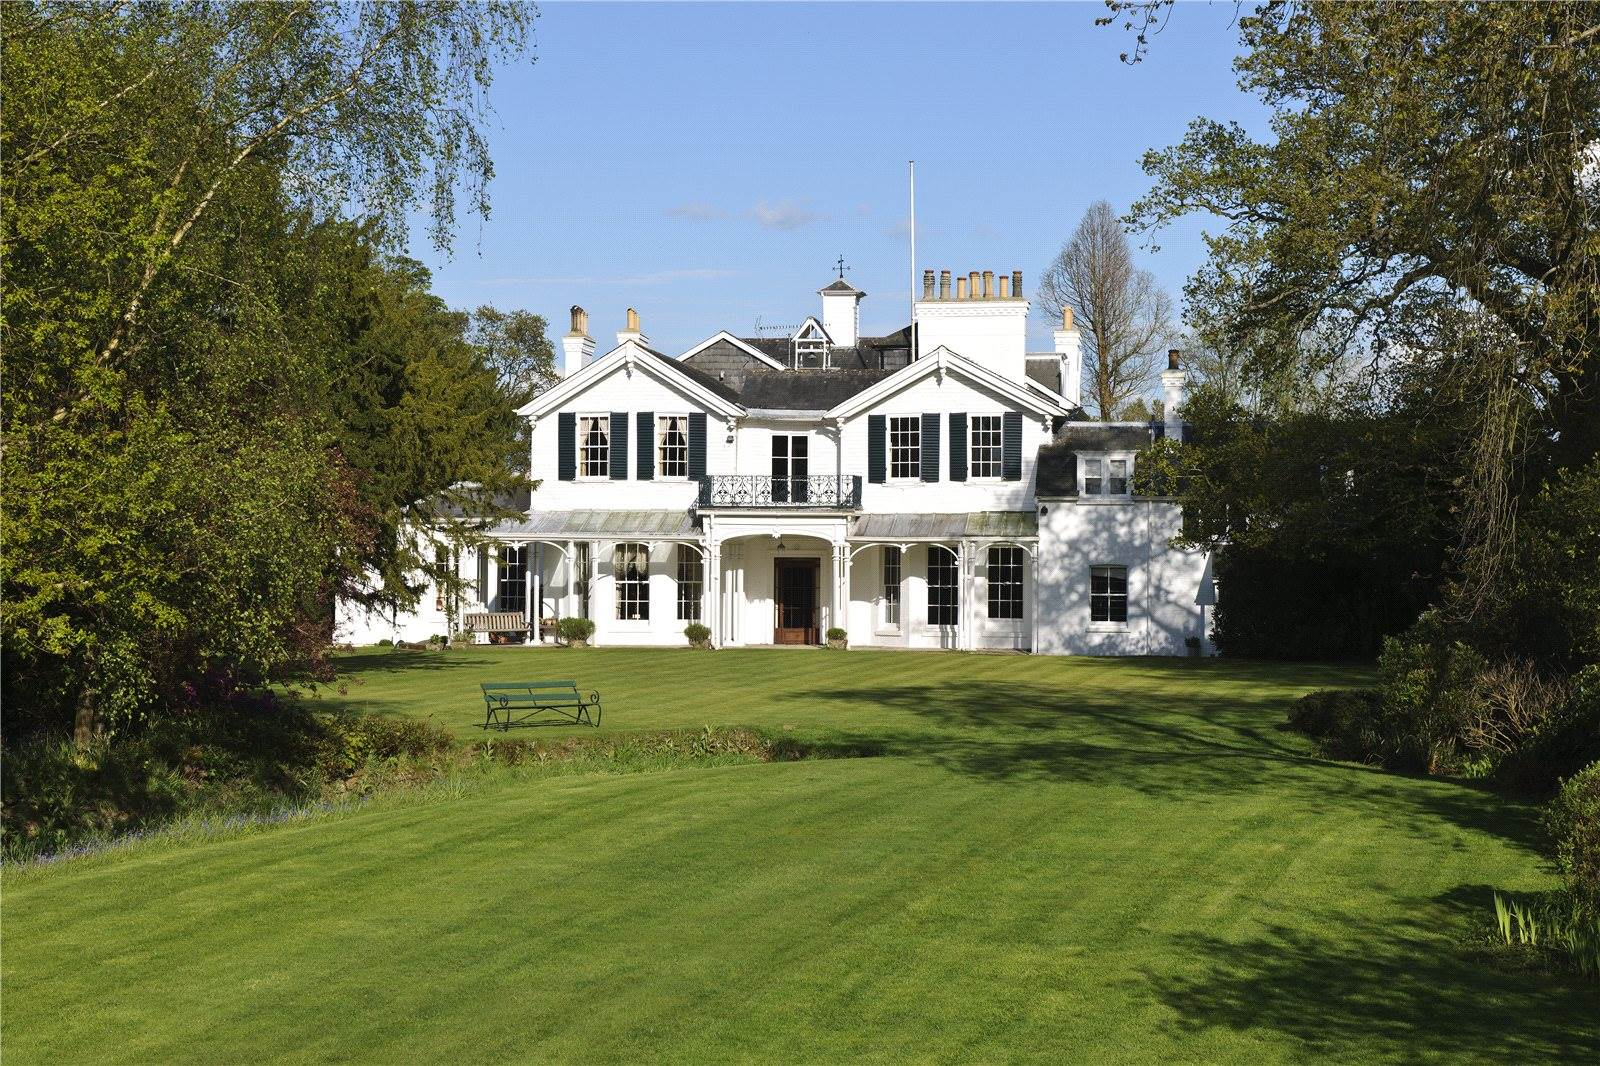 Langton House offers a professionally maintained cricket field and viewing pavilion